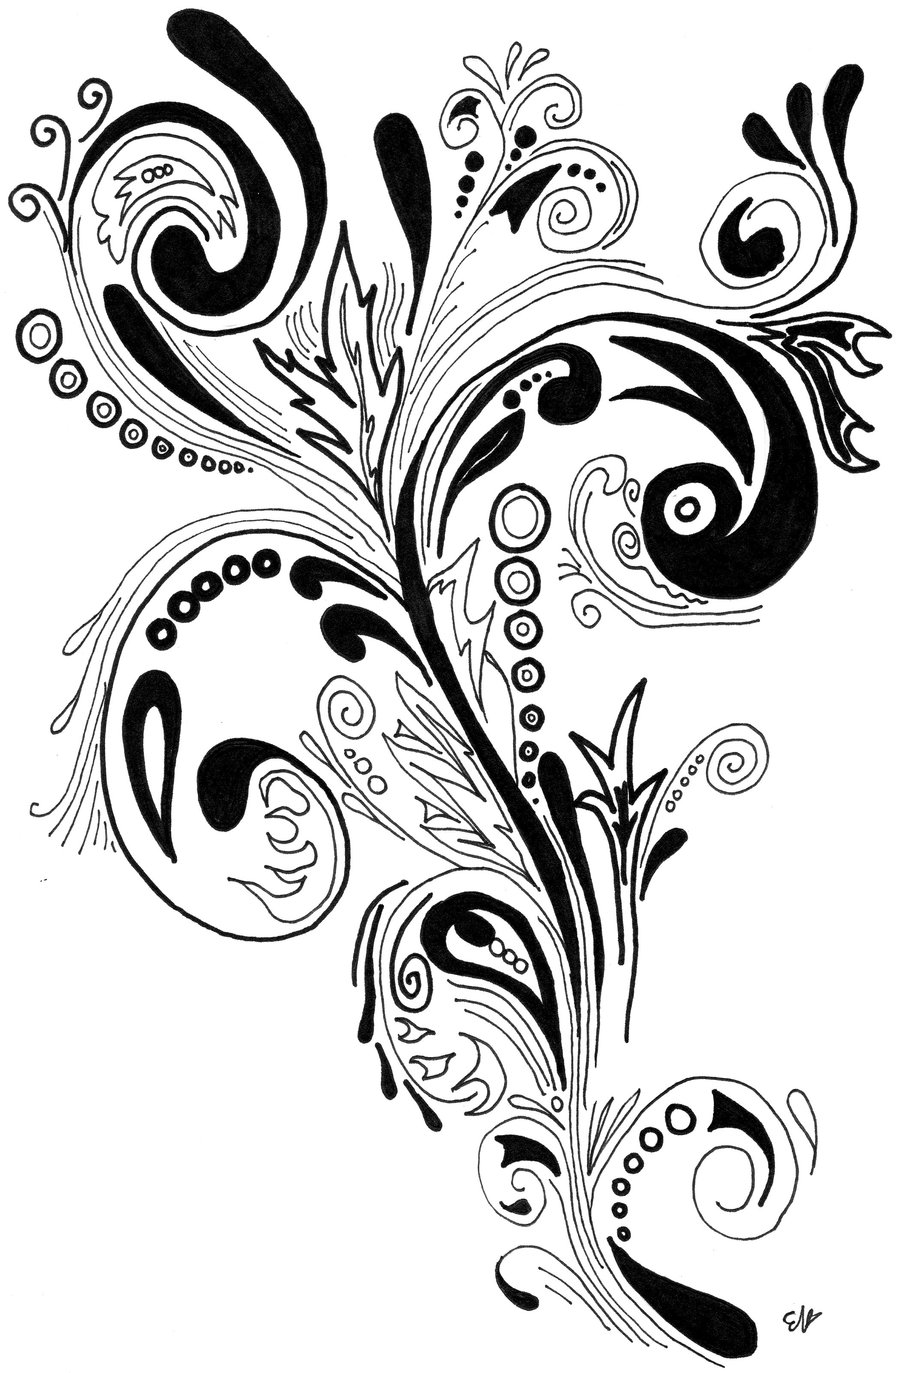 Swirling Tattoo Designs : swirling, tattoo, designs, Tattoo, Swirls,, Download, Clipart, Library